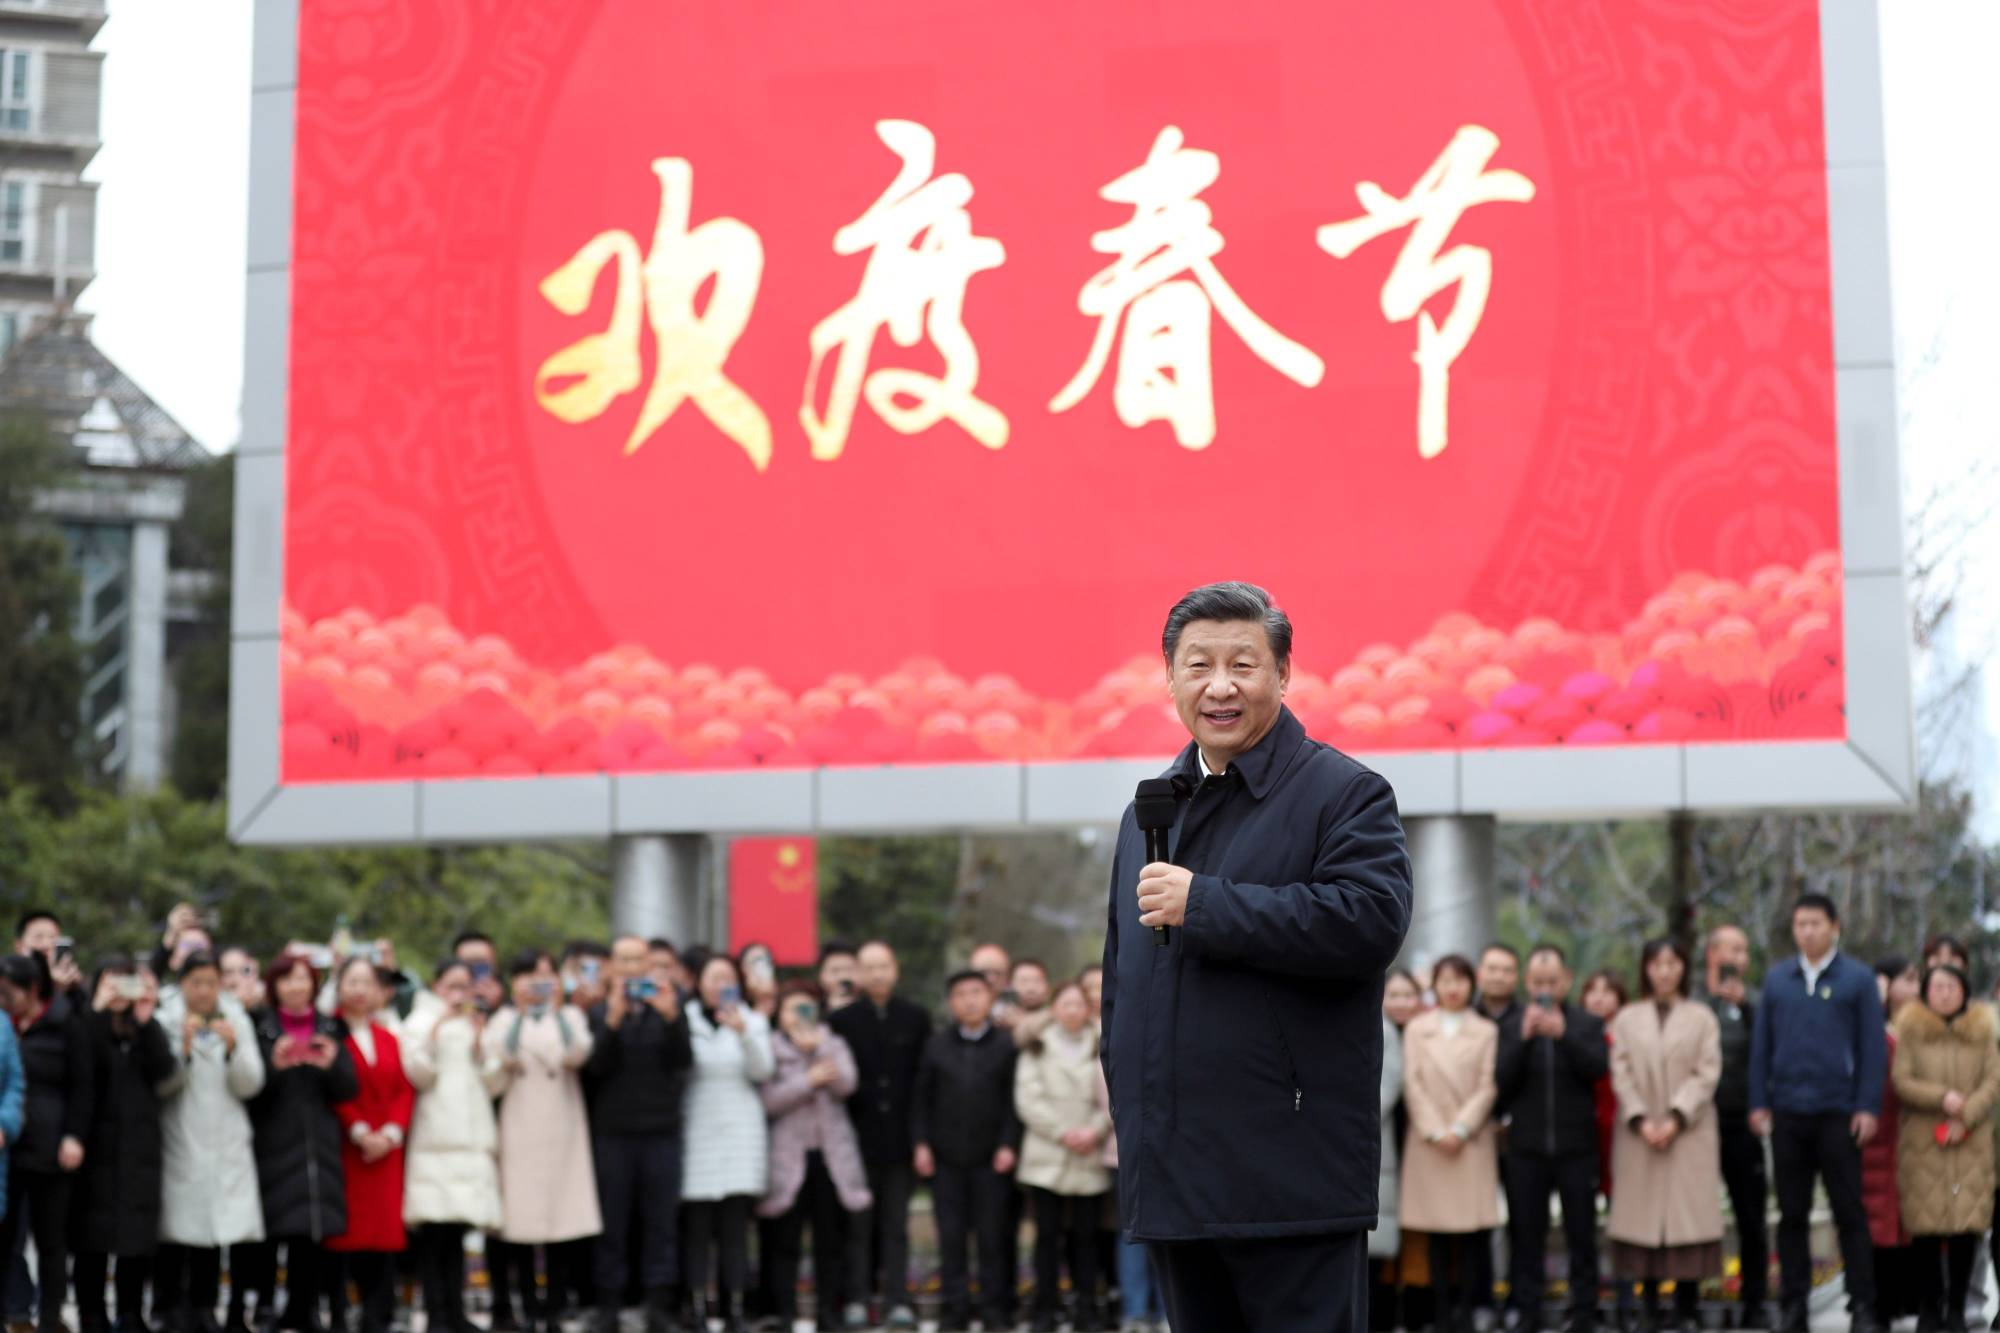 Chinese President Xi Jinping meets with local residents in the Guanshanhu District of Guiyang, the capital of southwest China's Guizhou Province, on Feb. 4.   XINHUA /GETTY IMAGES / VIA BLOOMBERG